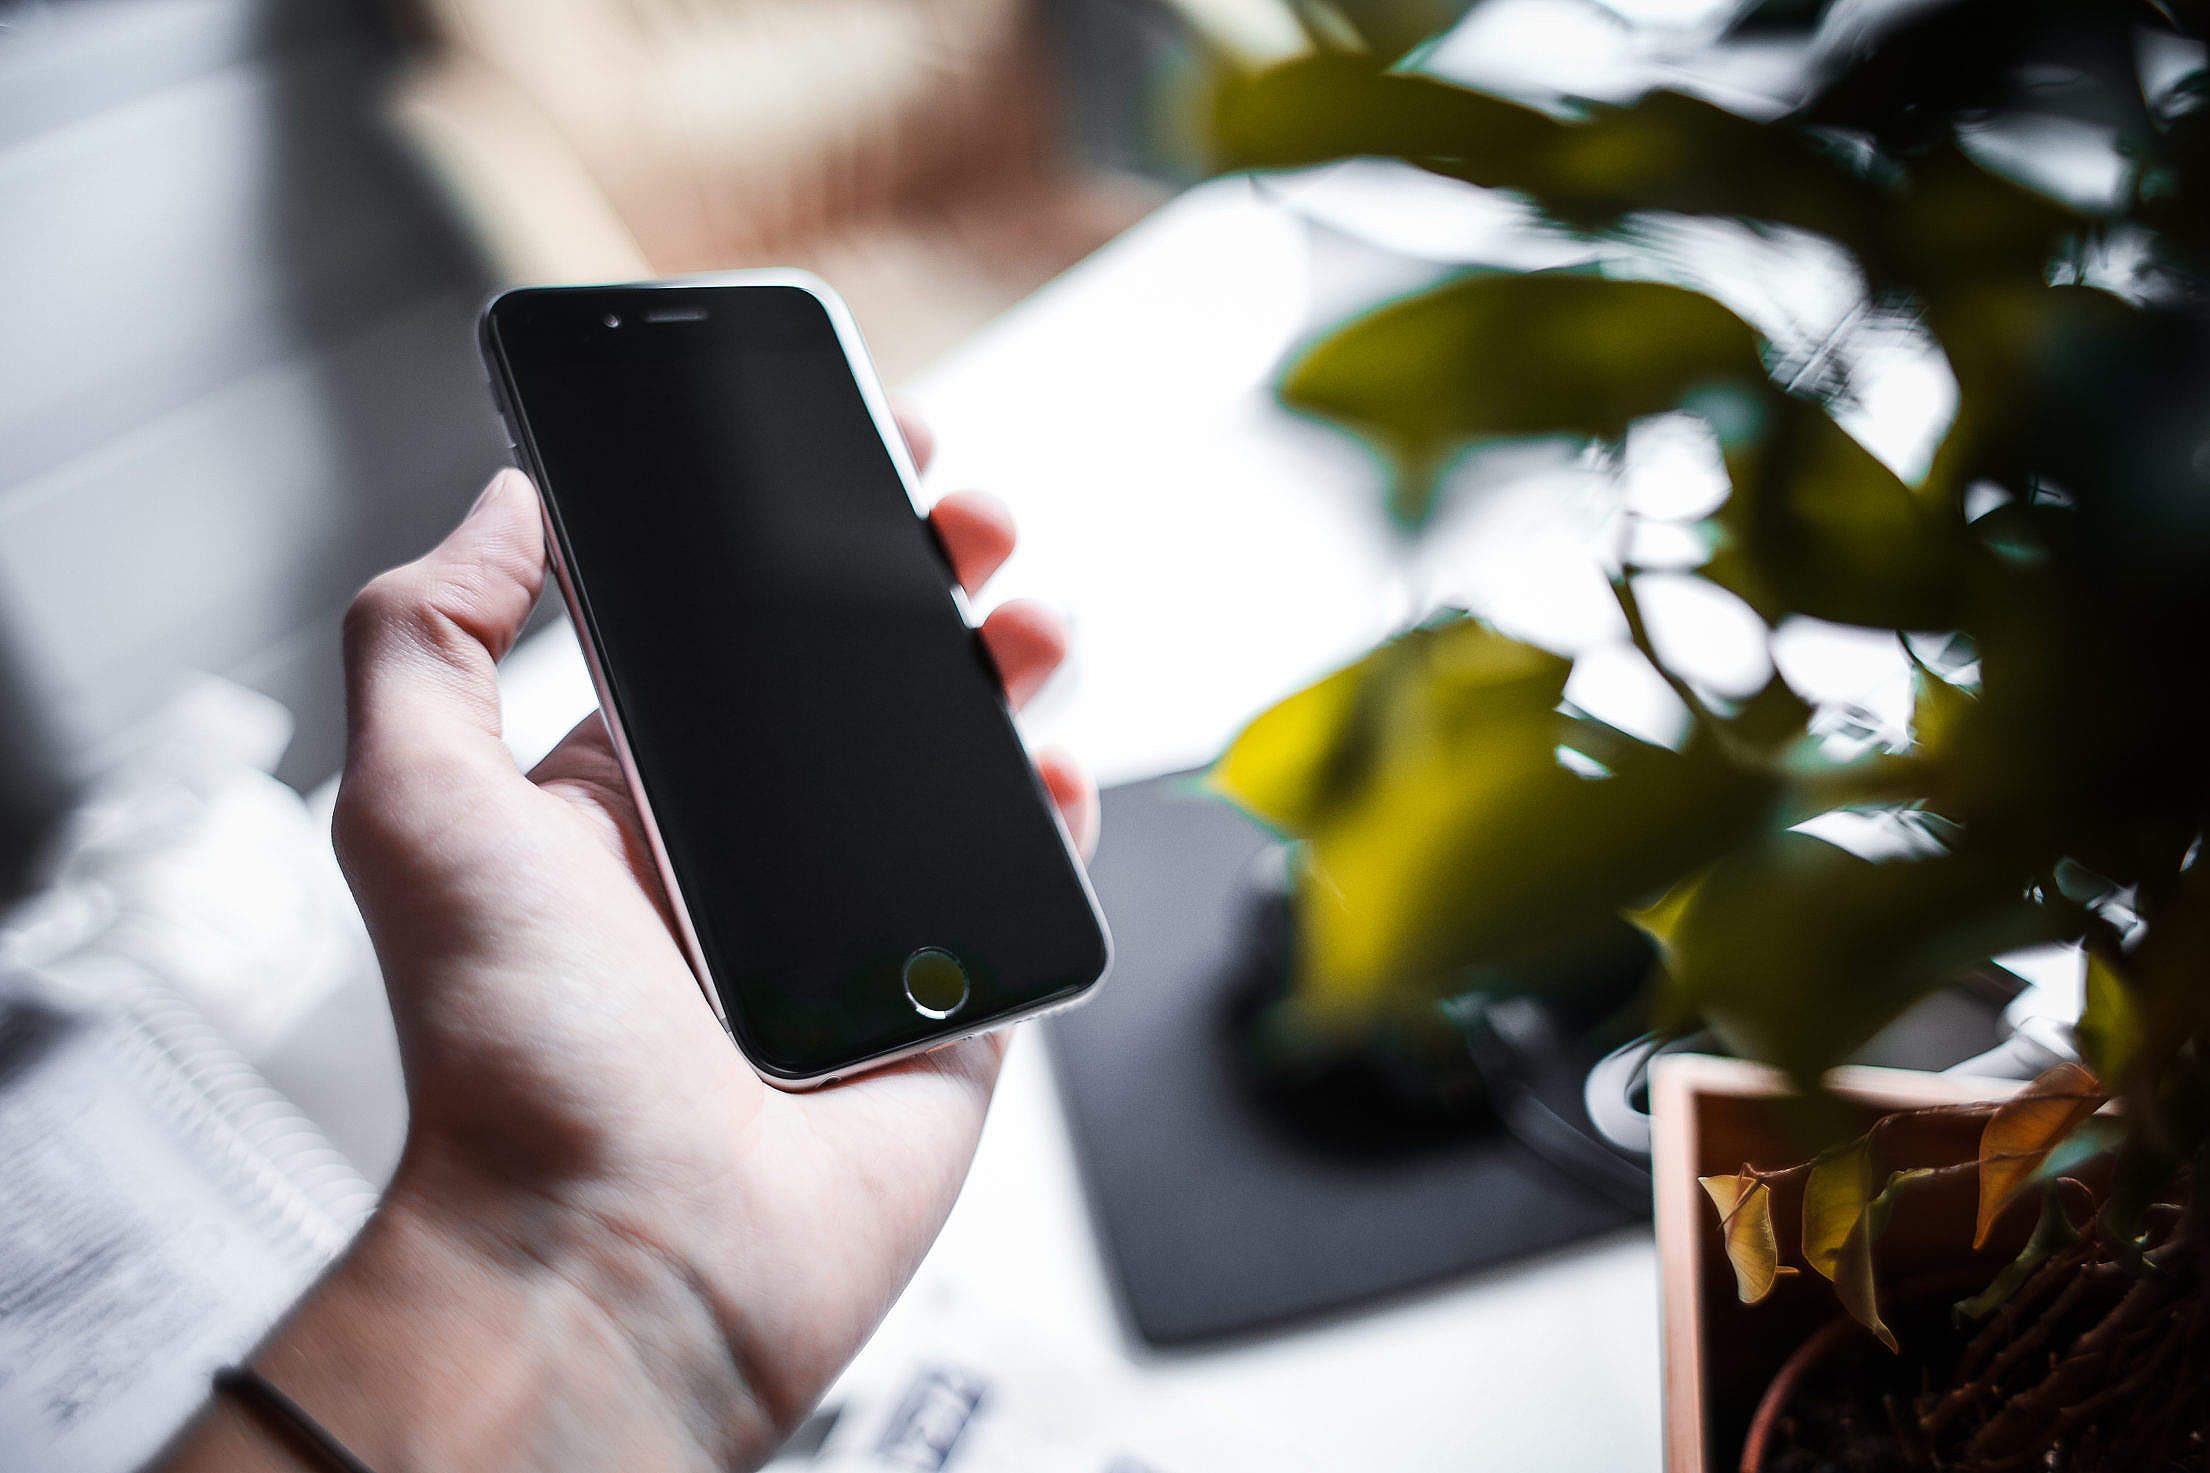 iPhone 6 Space Gray in Green Leaves Free Stock Photo